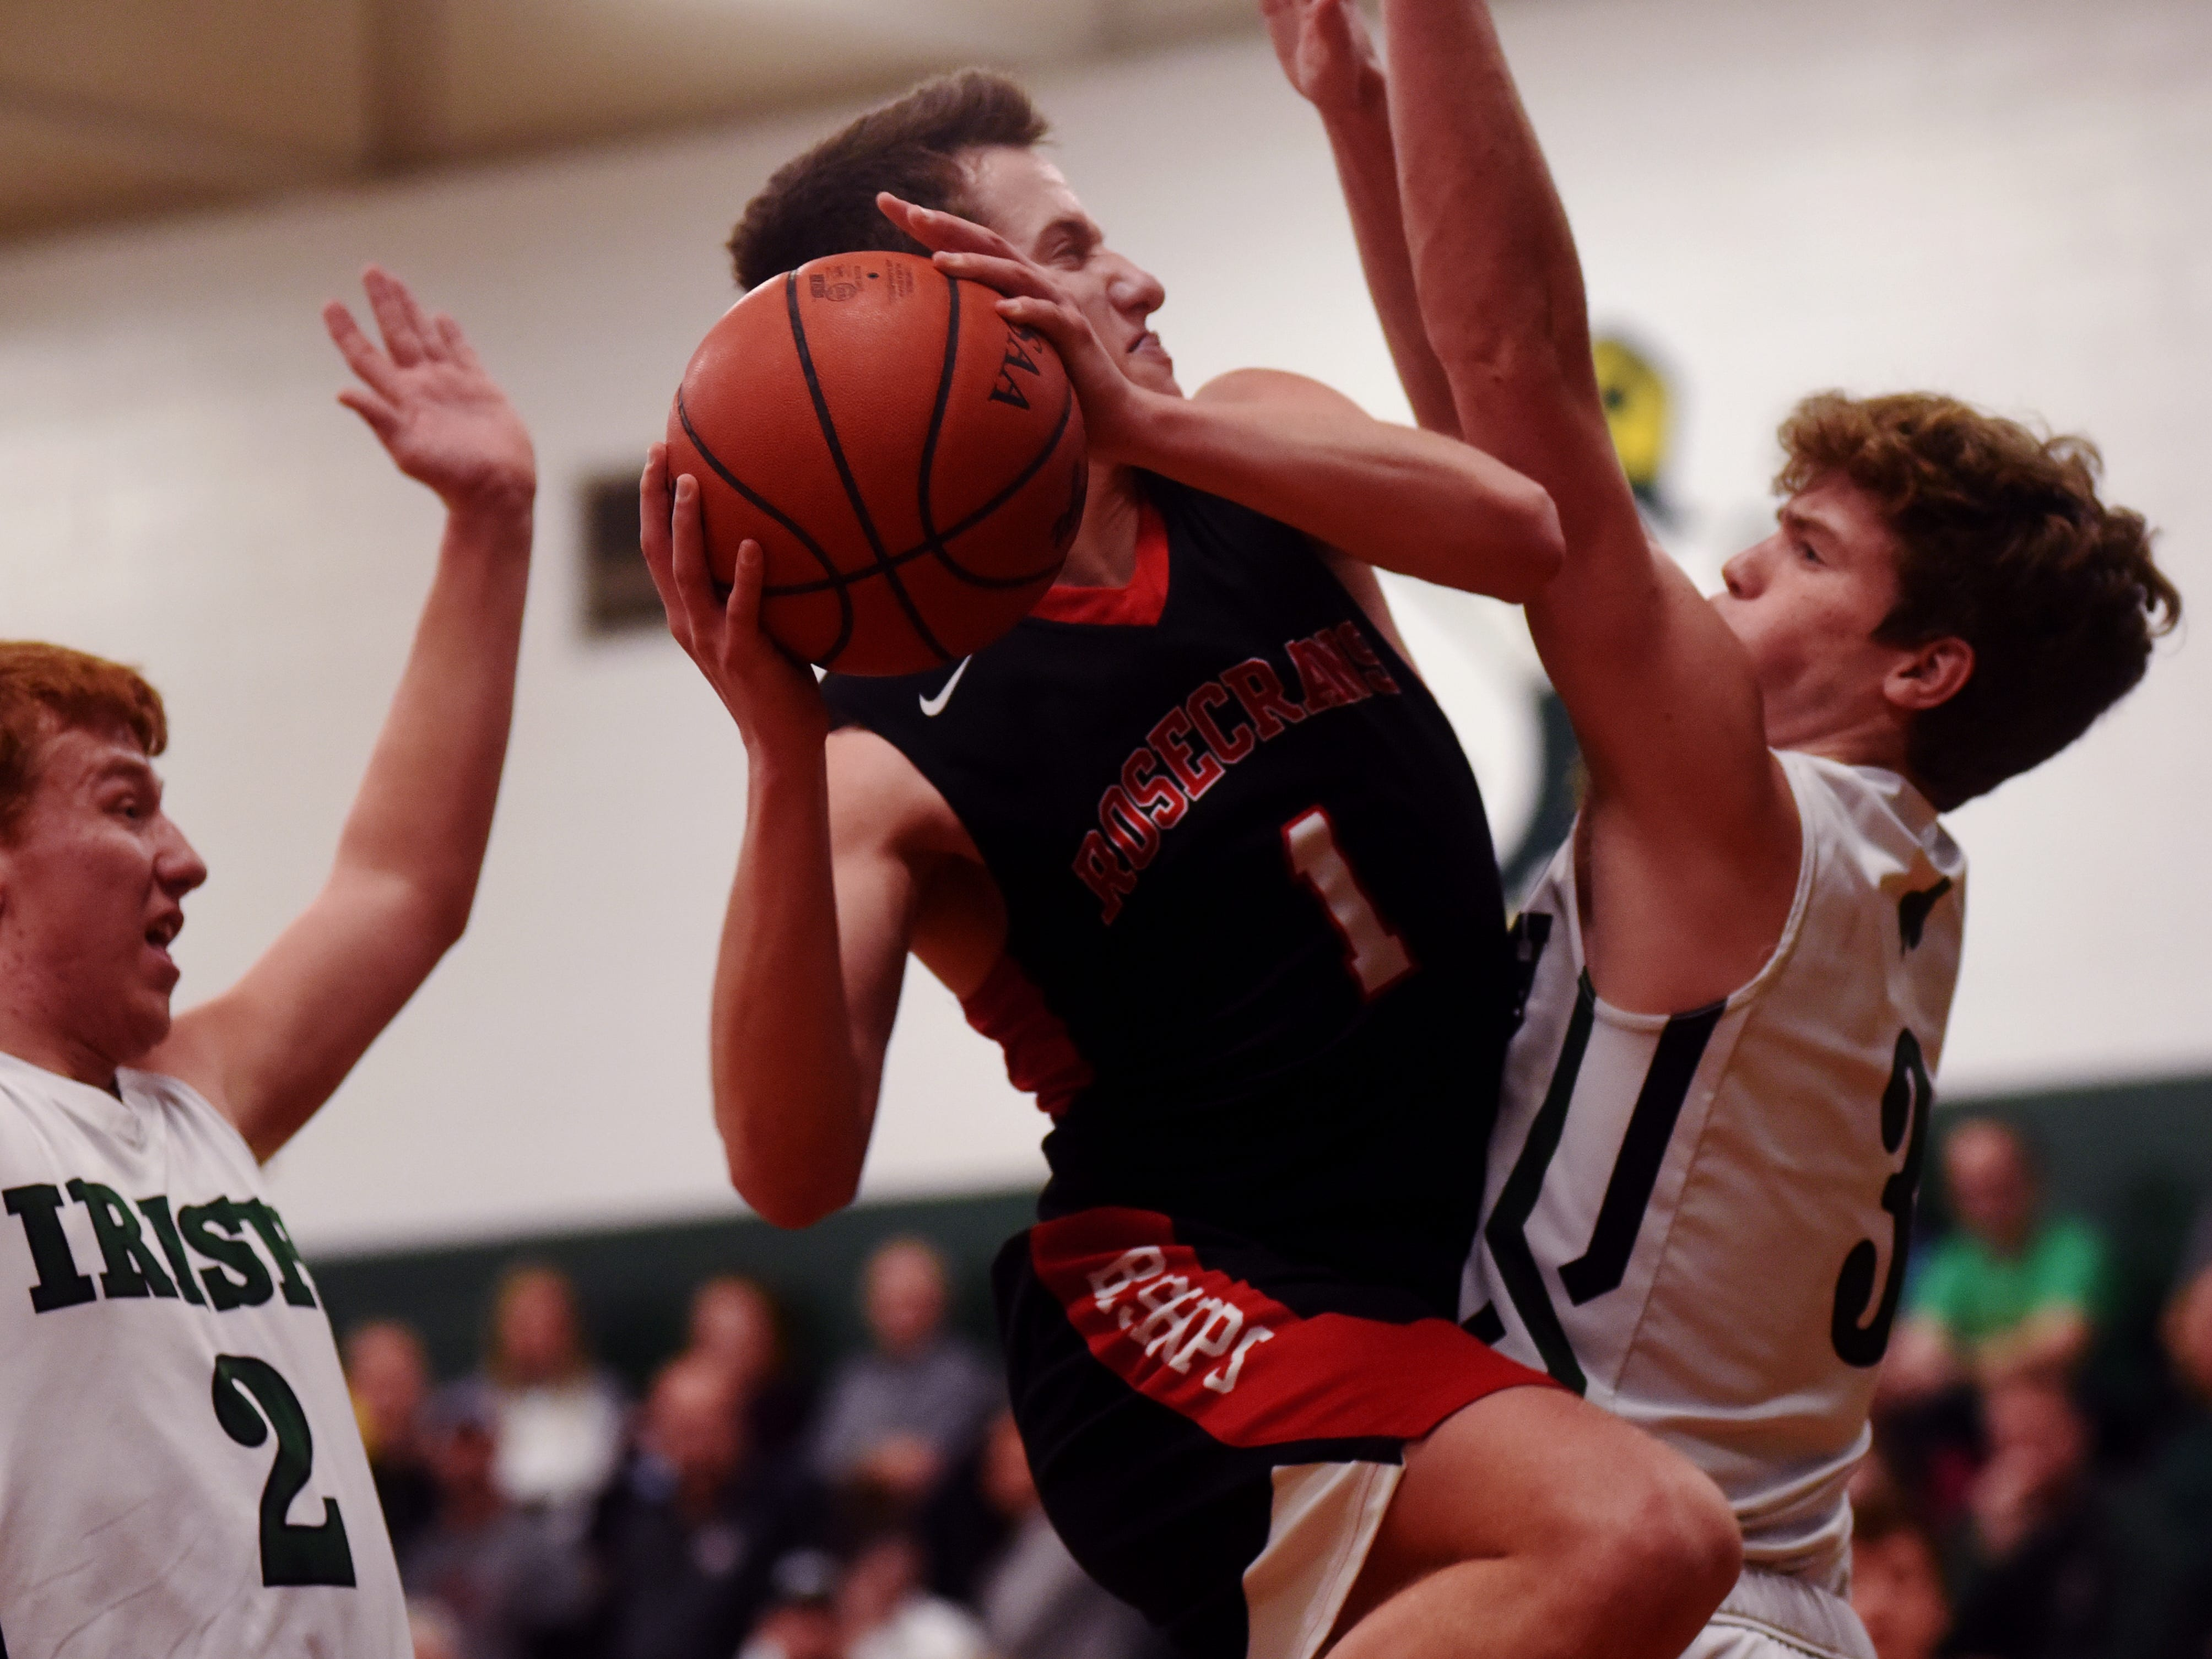 Rosecrans' Jack Goggin drives into traffic against Fisher Catholic's Jayden Boyden, left, and Collin McCrady.